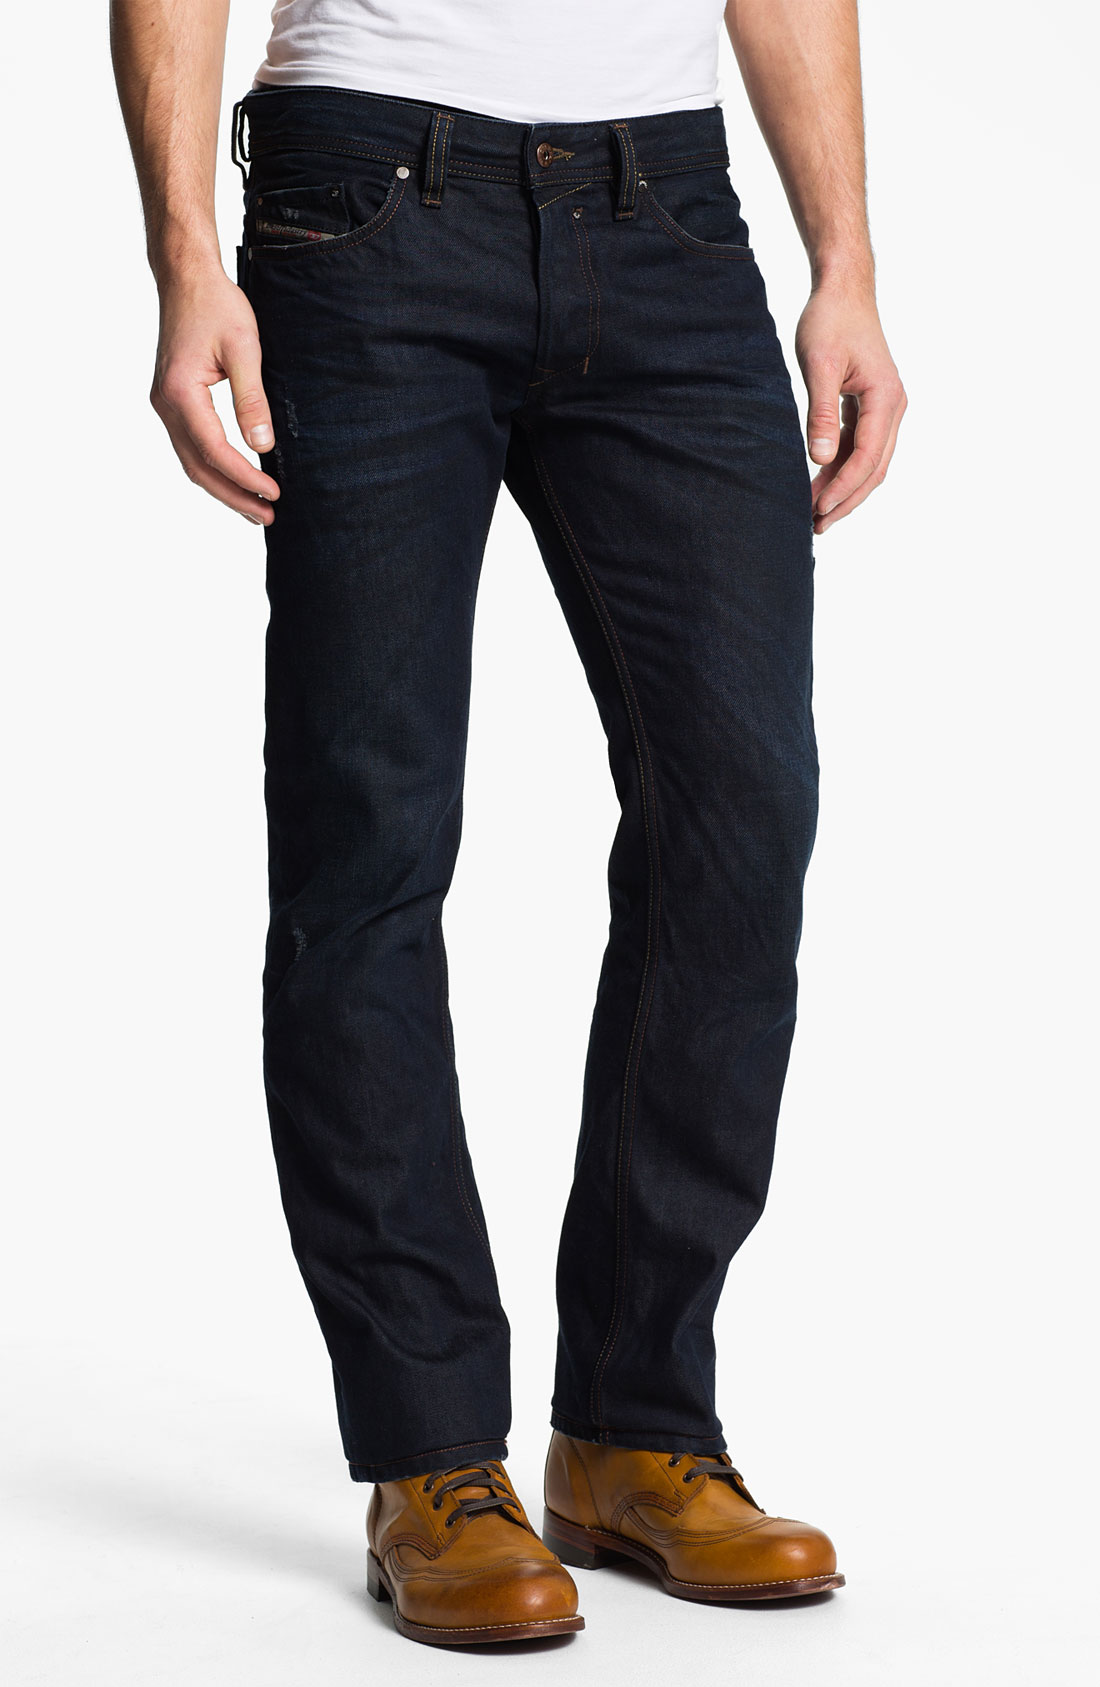 lyst diesel safado straight leg jeans in black for men. Black Bedroom Furniture Sets. Home Design Ideas